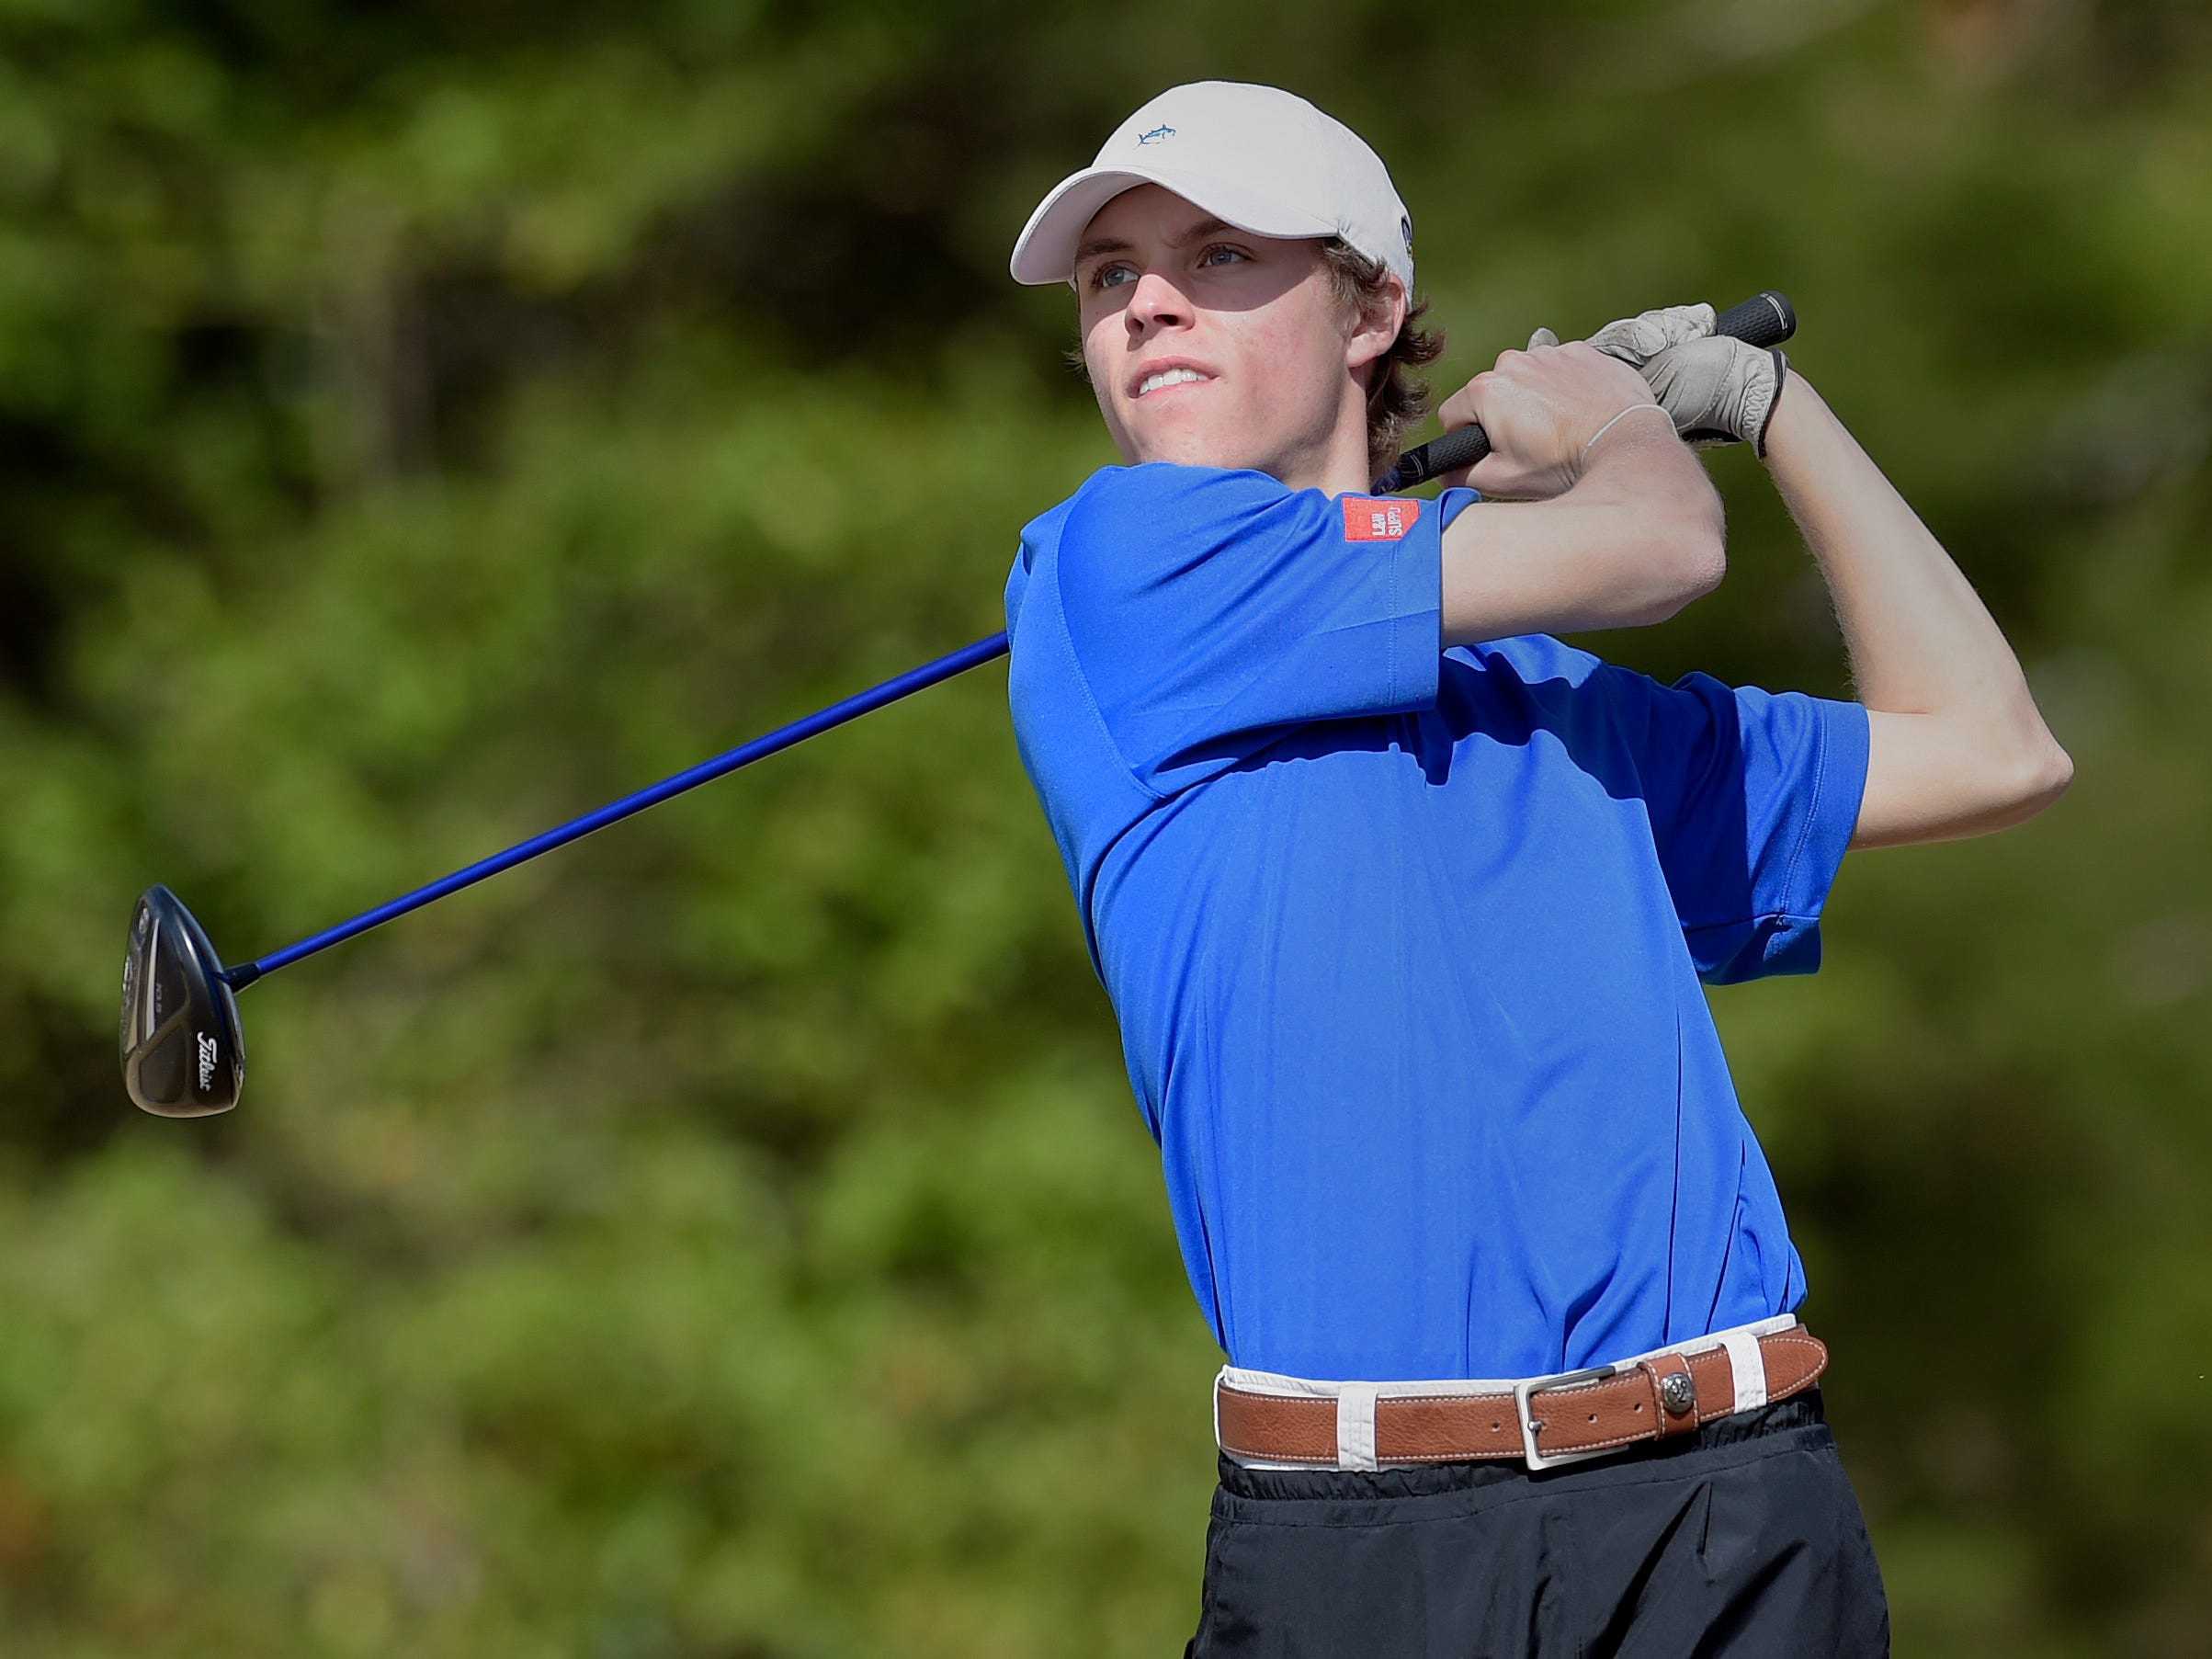 Bennett Gilliard, shown in the 2015 Greenville County tournament, and the Eastside Eagles won the Peach Blossom AAA Region tournament Monday at Links O'Tryon Golf Club.